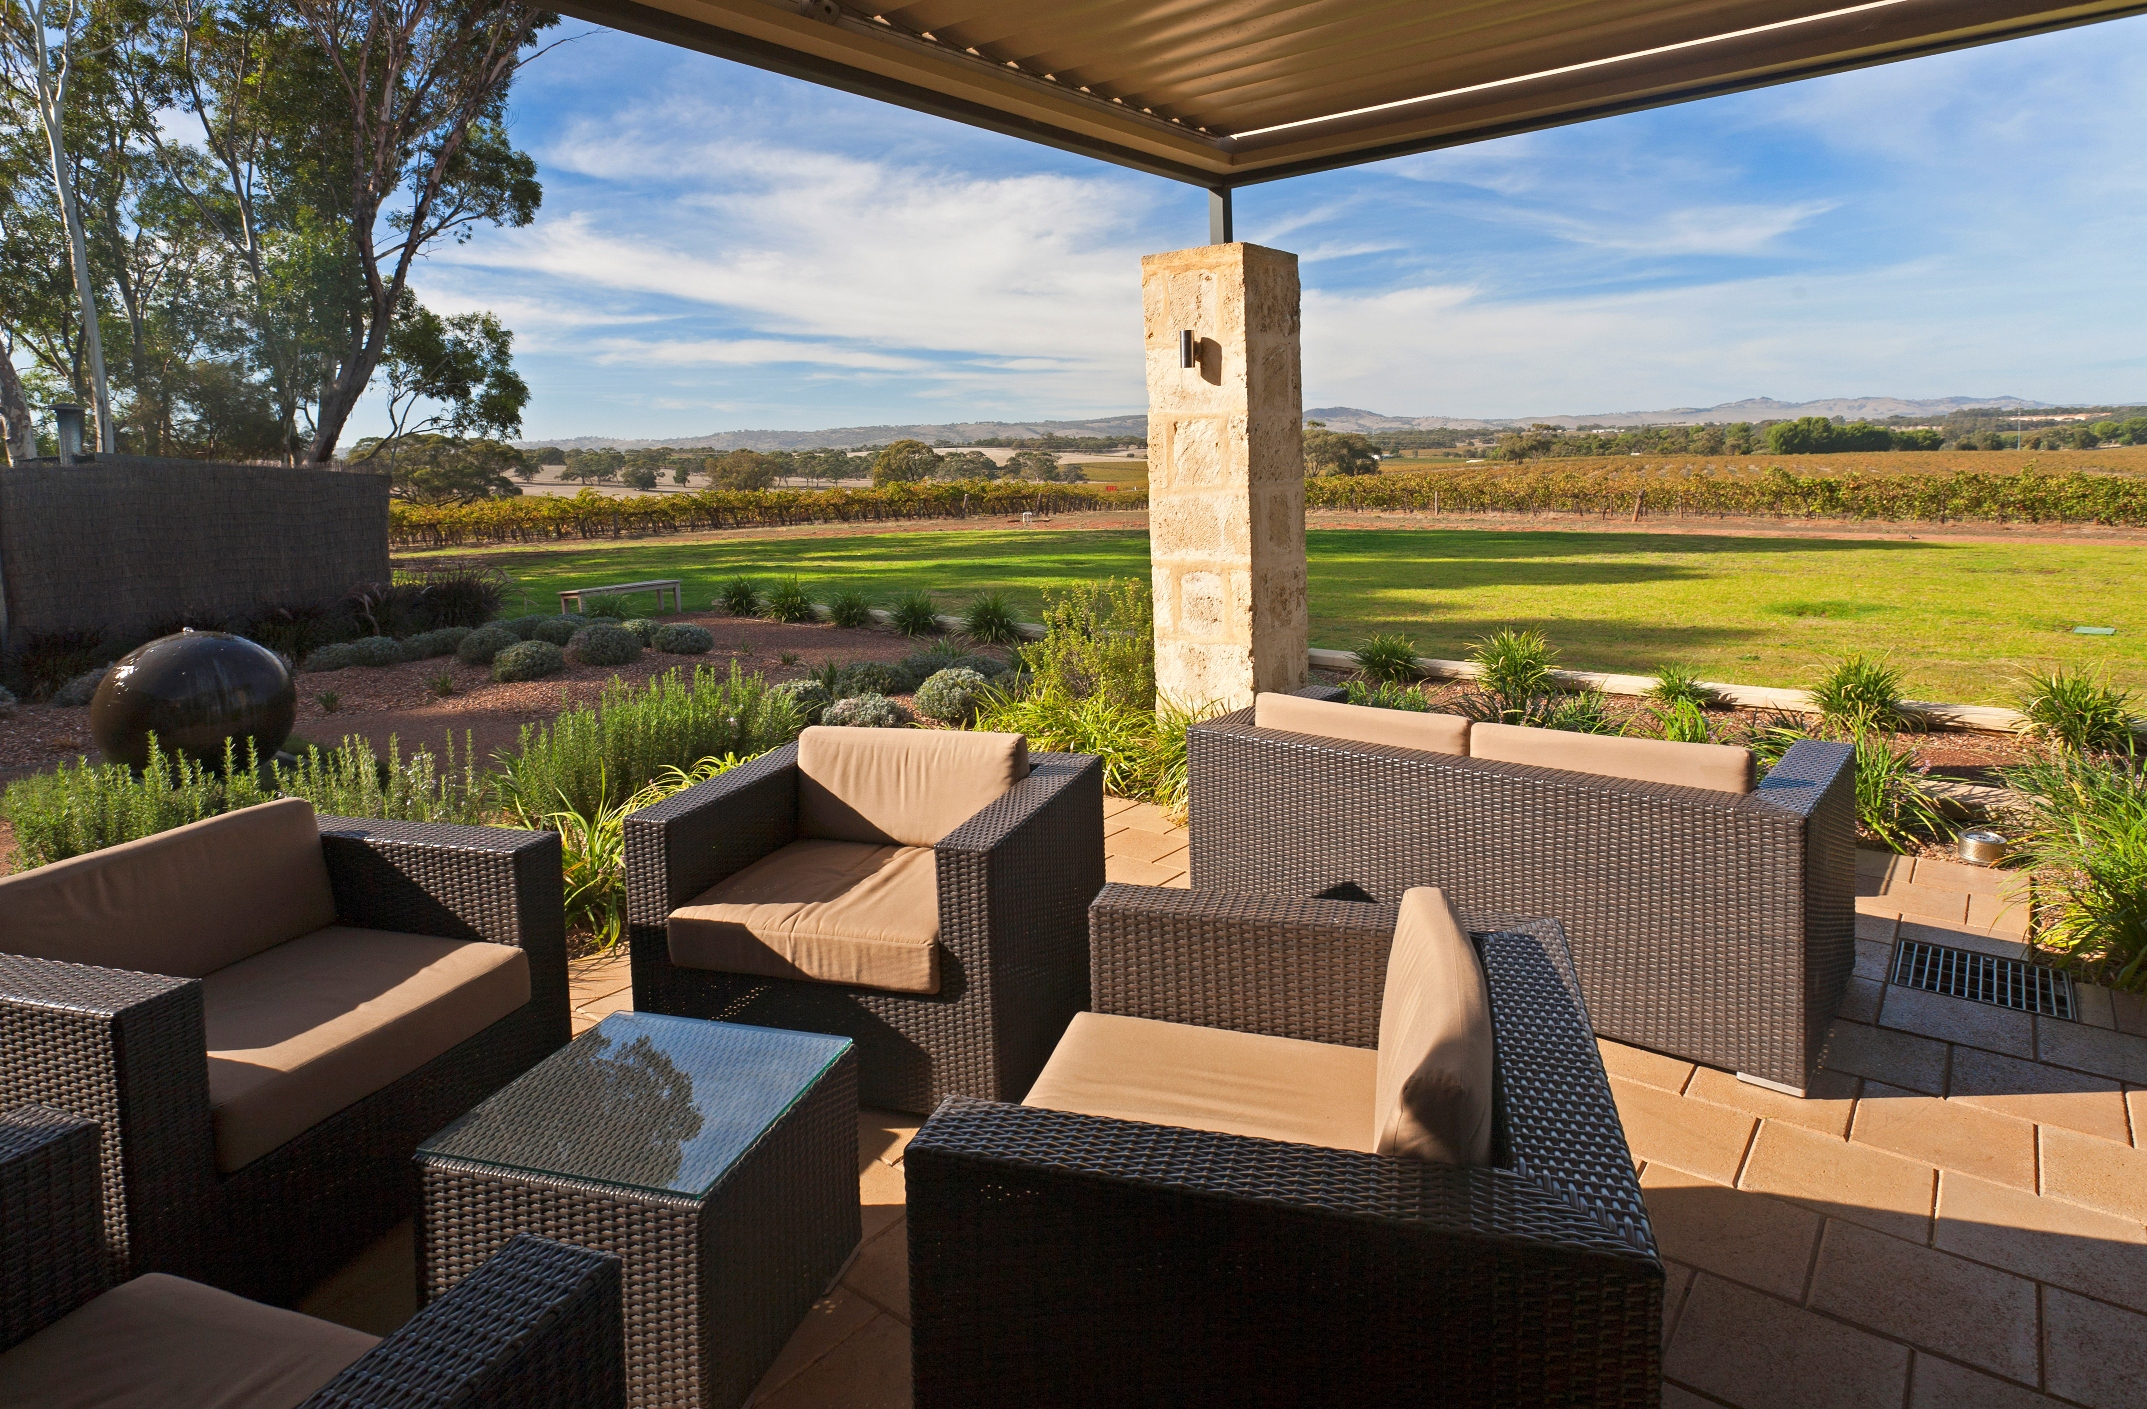 The terrace at Appelation, The Louise, Barossa Valley